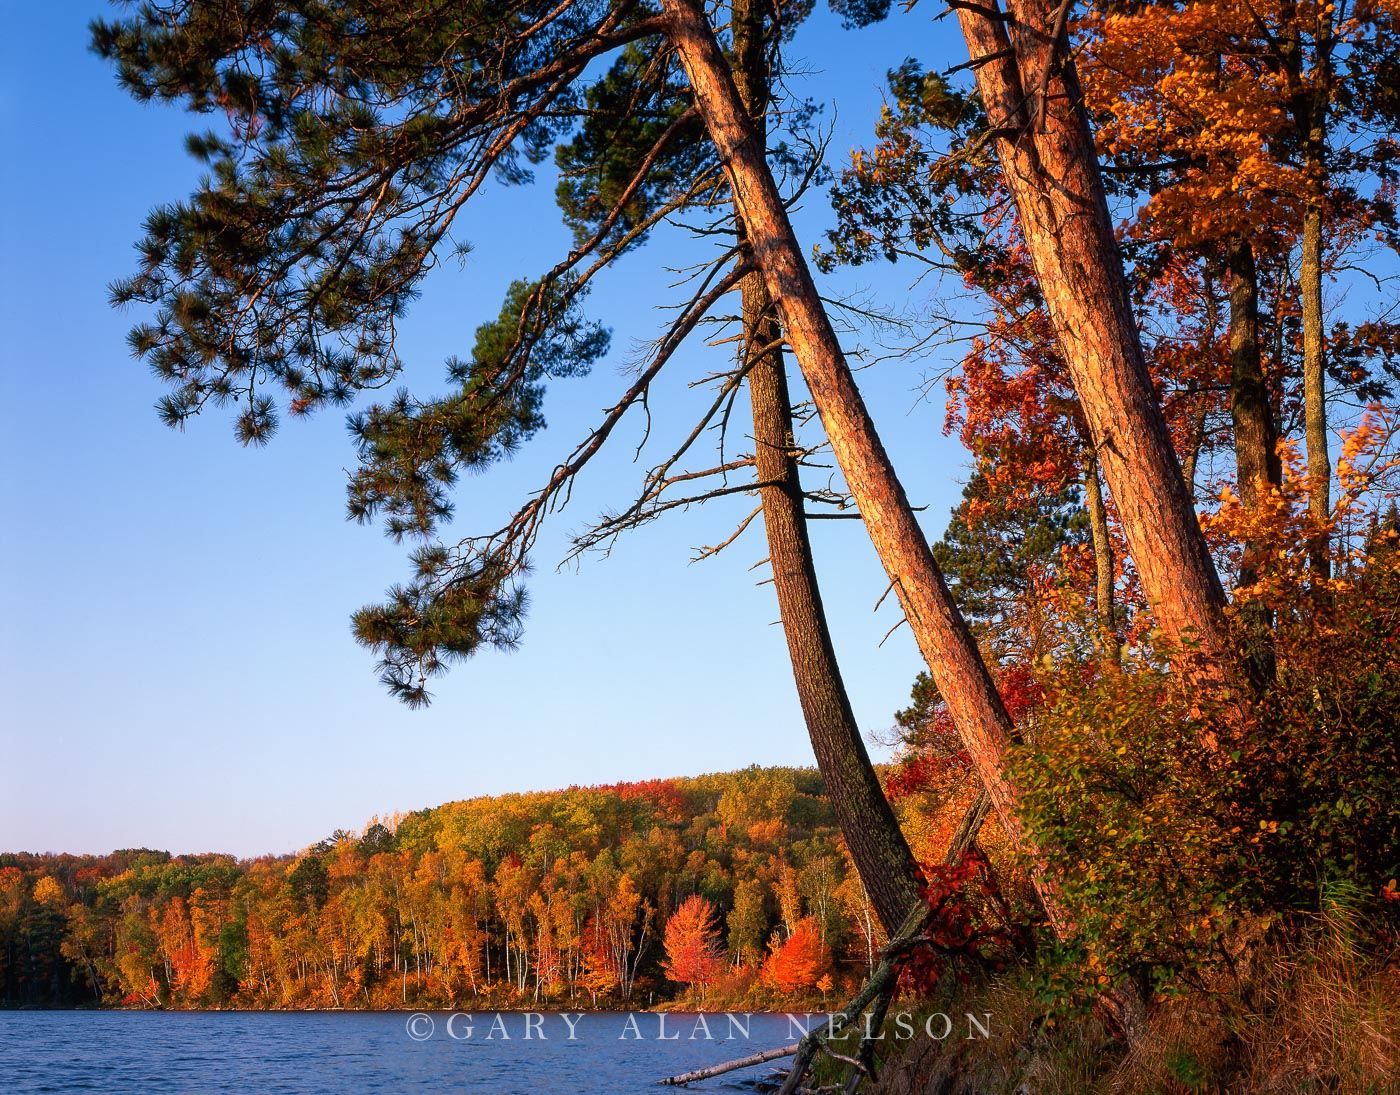 White and red pines leaning over Kremer Lake, Chippewa National Forest, Minnesota